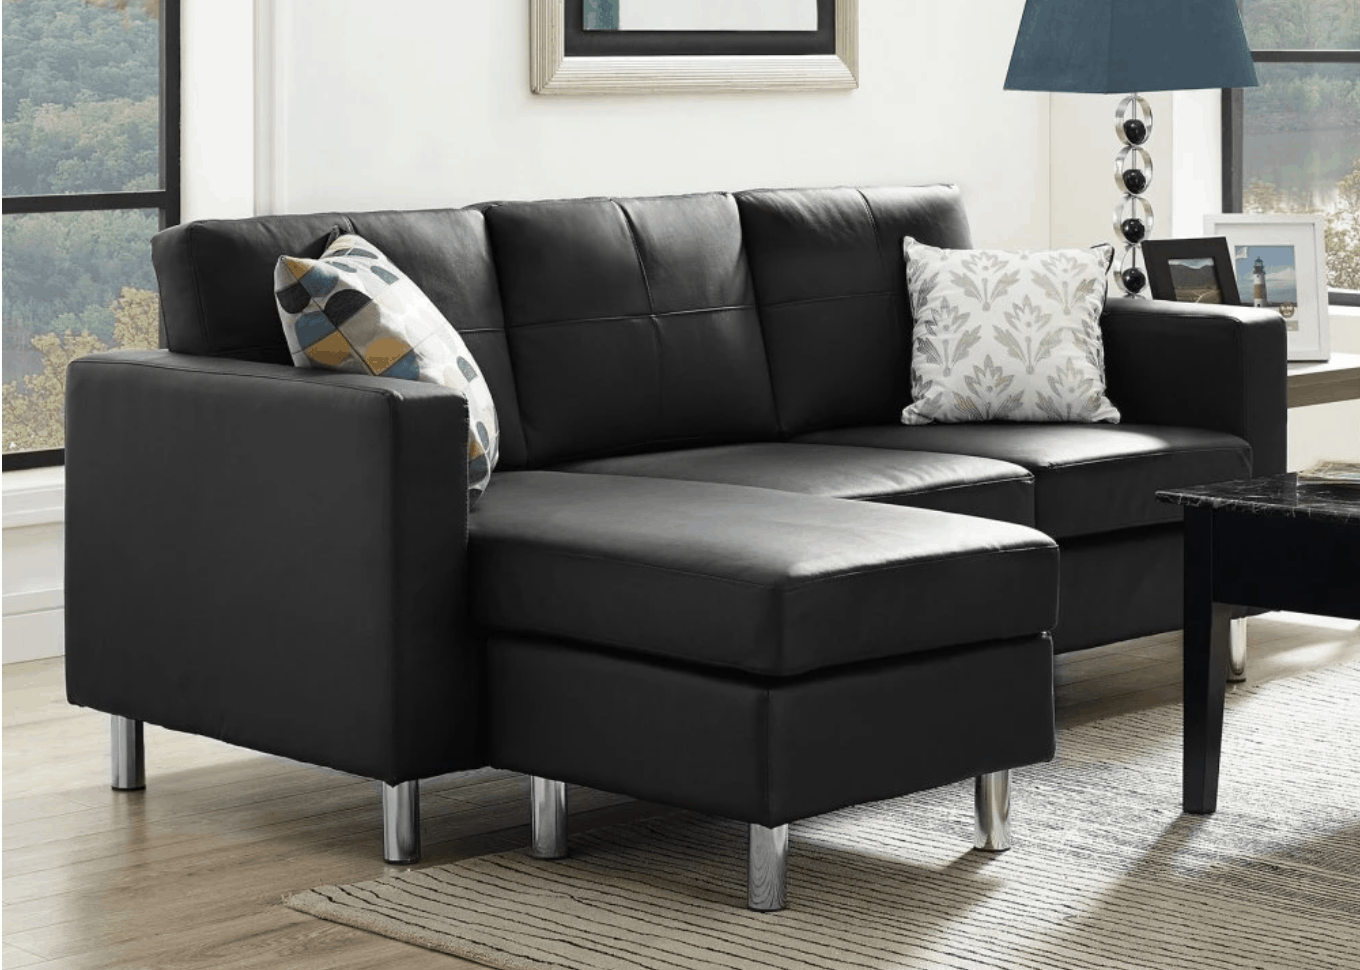 75 modern sectional sofas for small spaces 2018 for Sectional sofas in small spaces